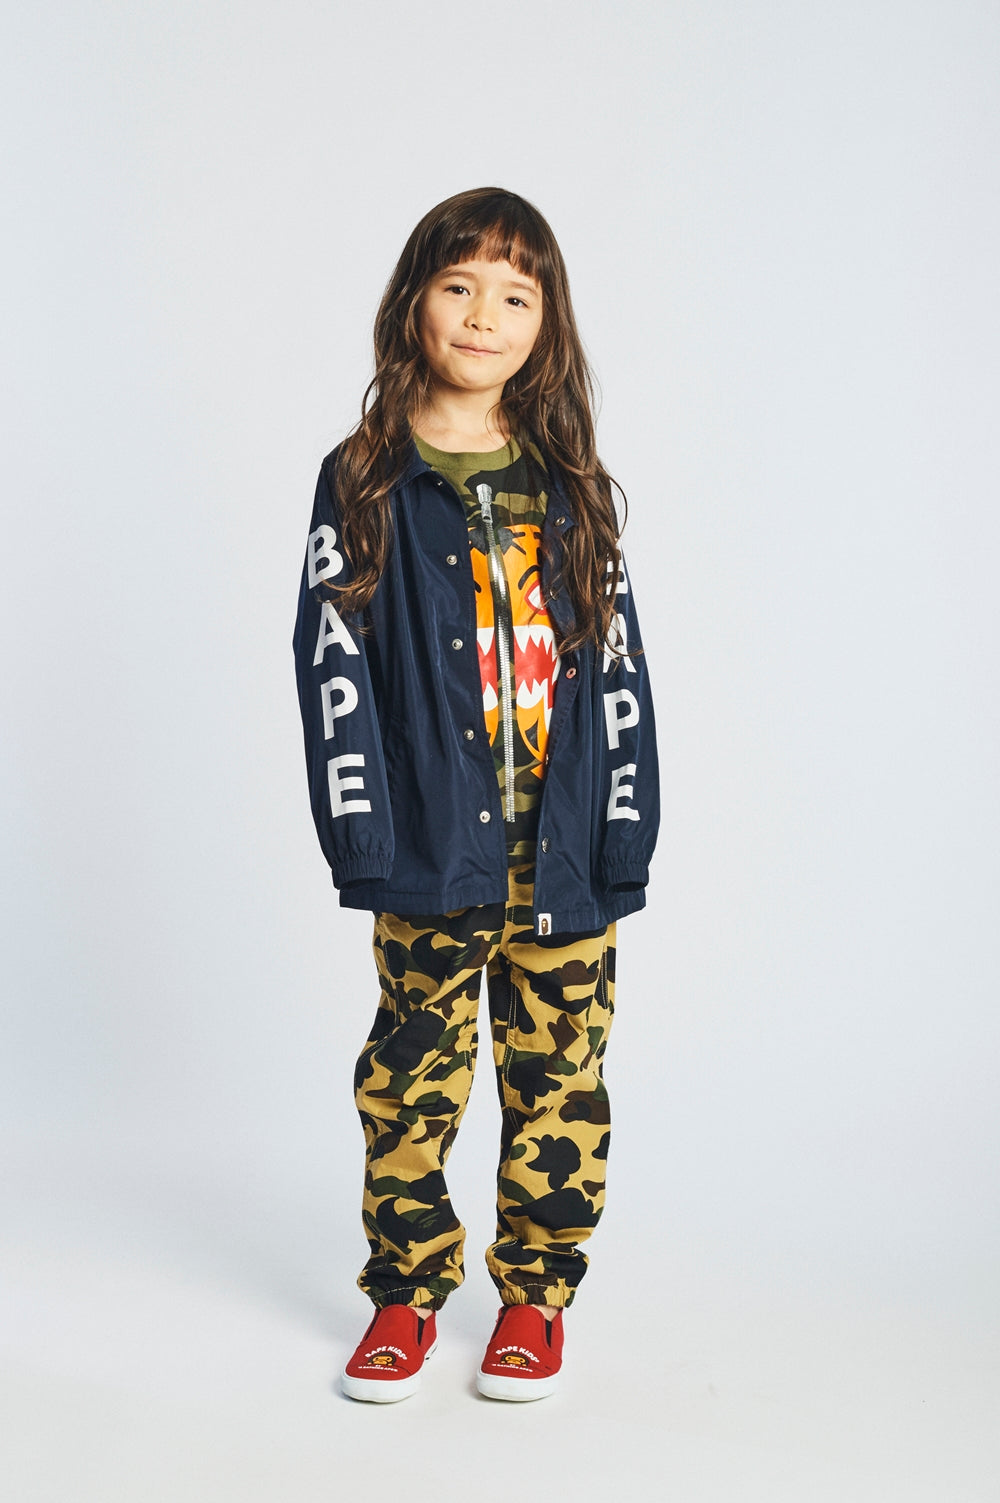 A BATHING APE 2018 SS KIDS' LOOKBOOK 9